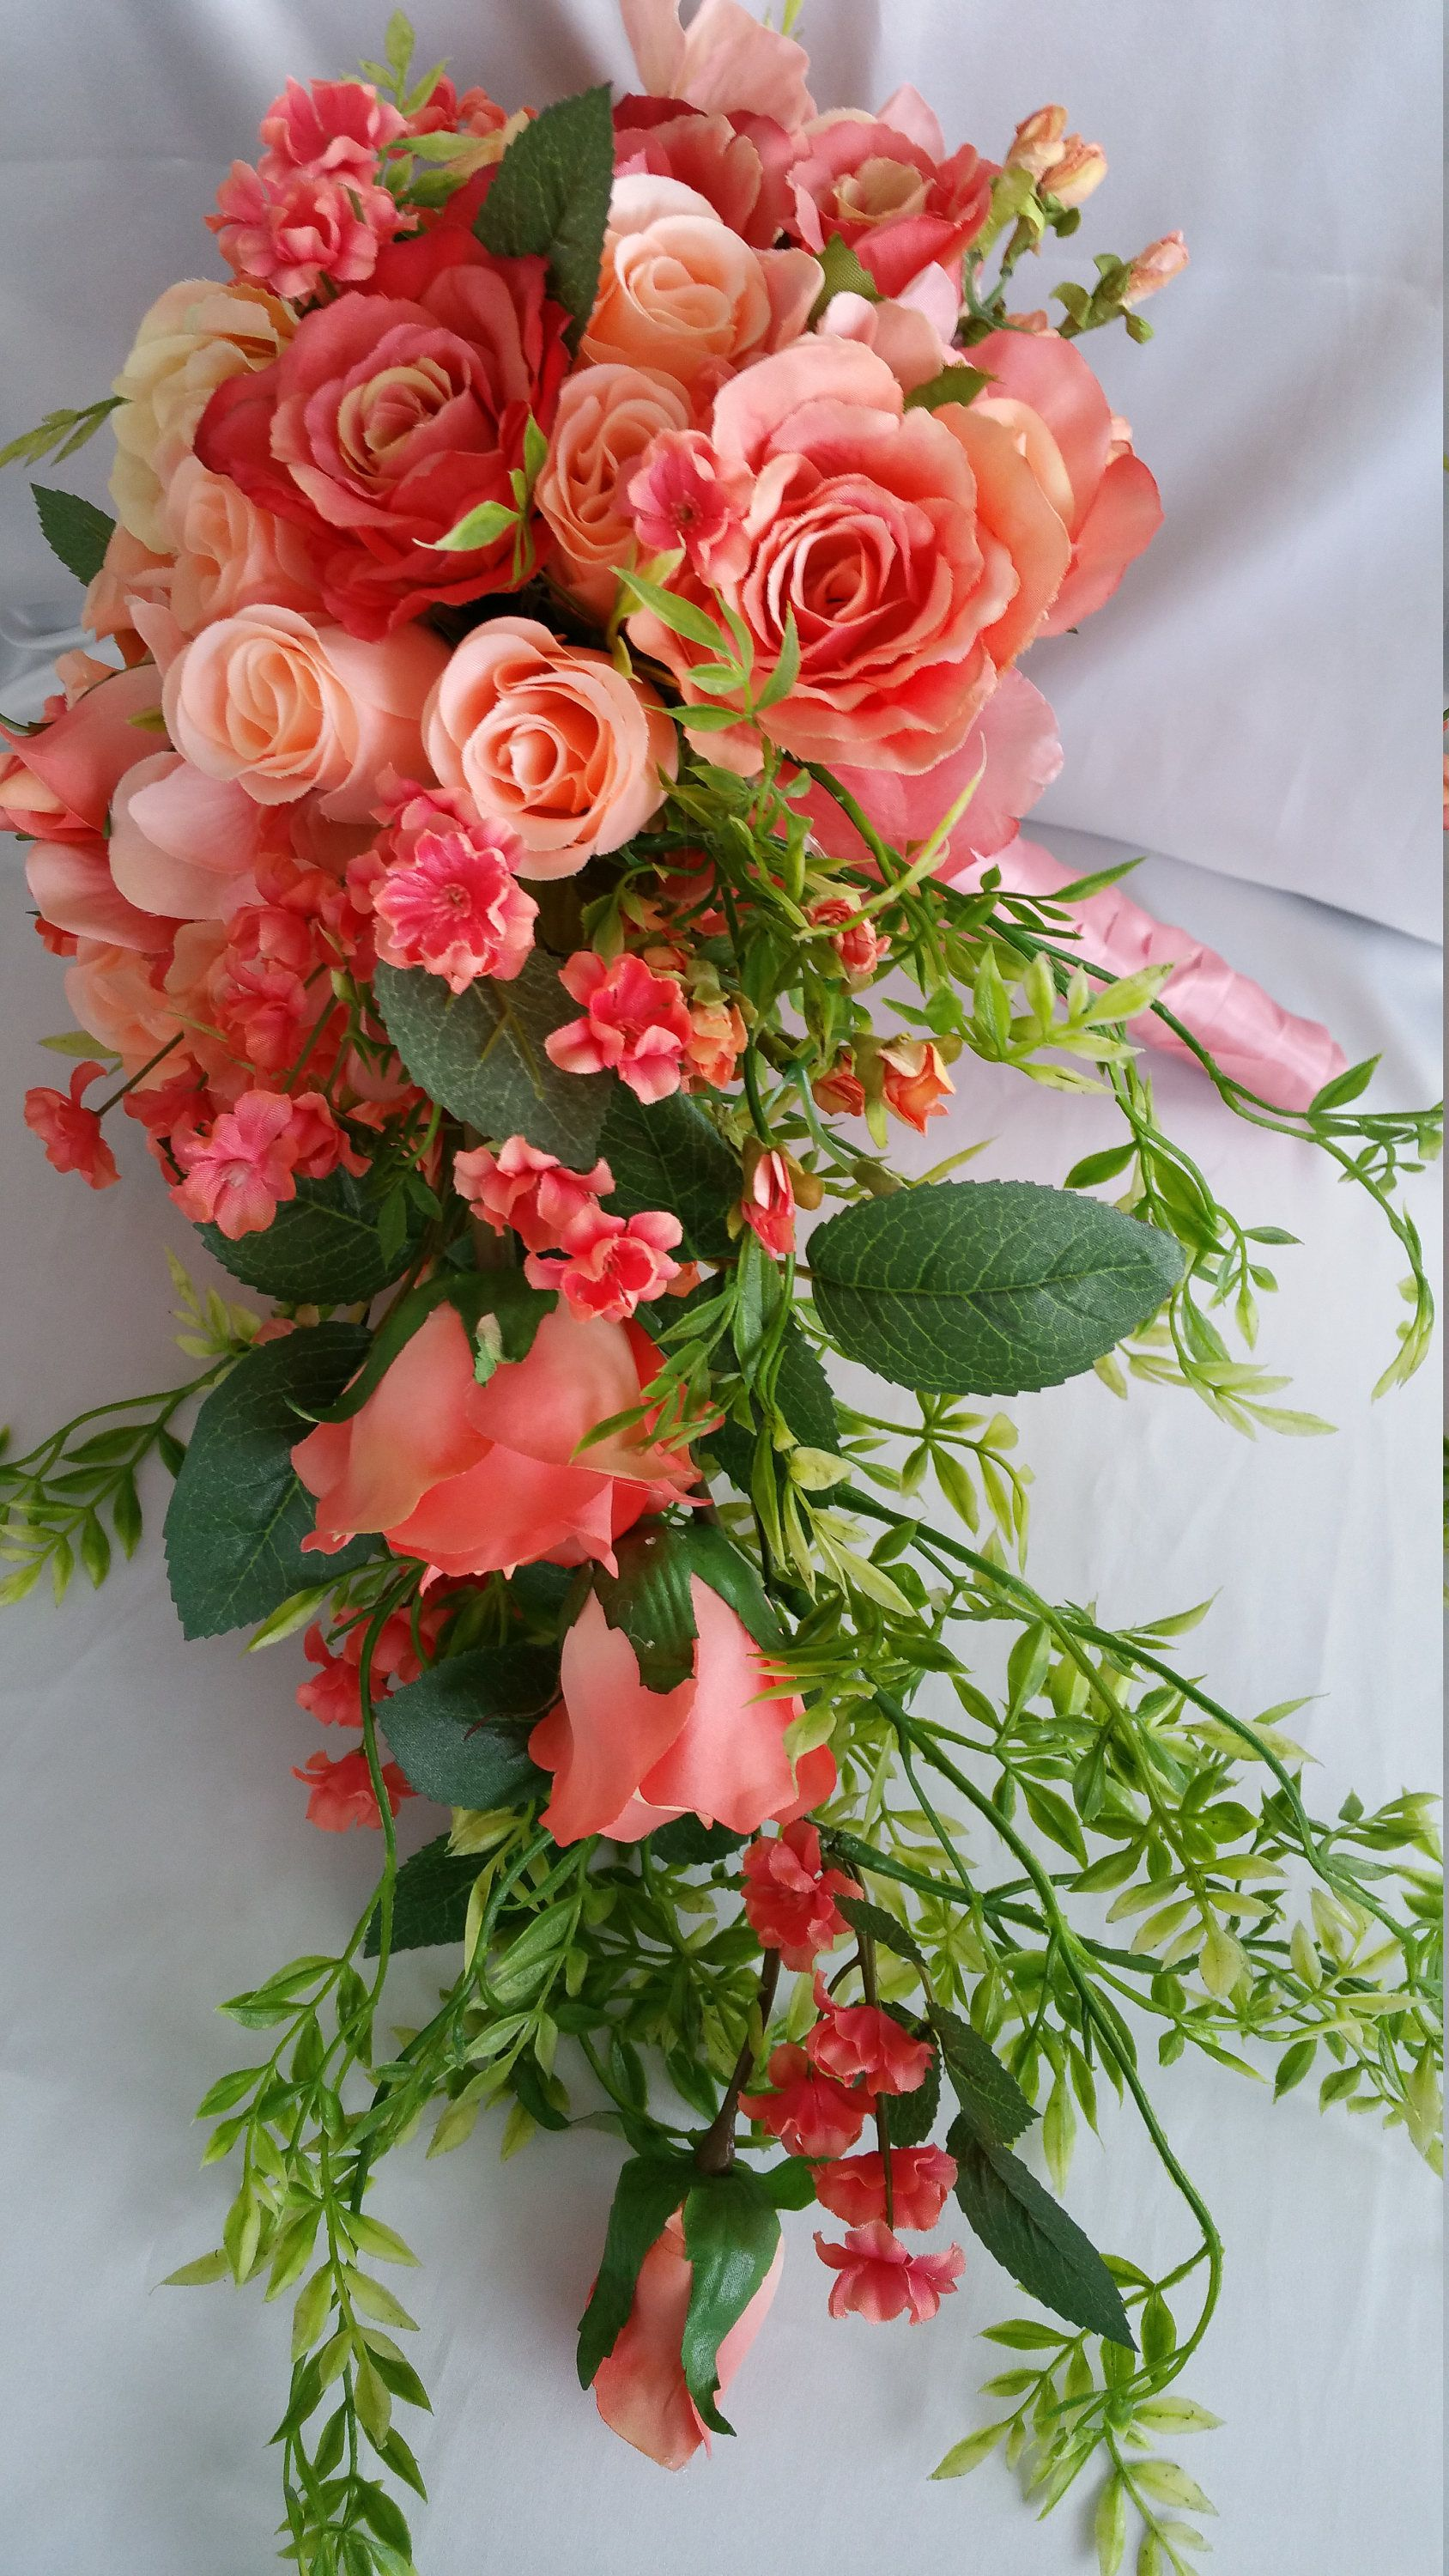 Bridal Cascade Bouquet Free Boutonniere Coral Peach Discount Package Available, Pick Colors Flower Ribbon, Roses Realistic Handmade Original